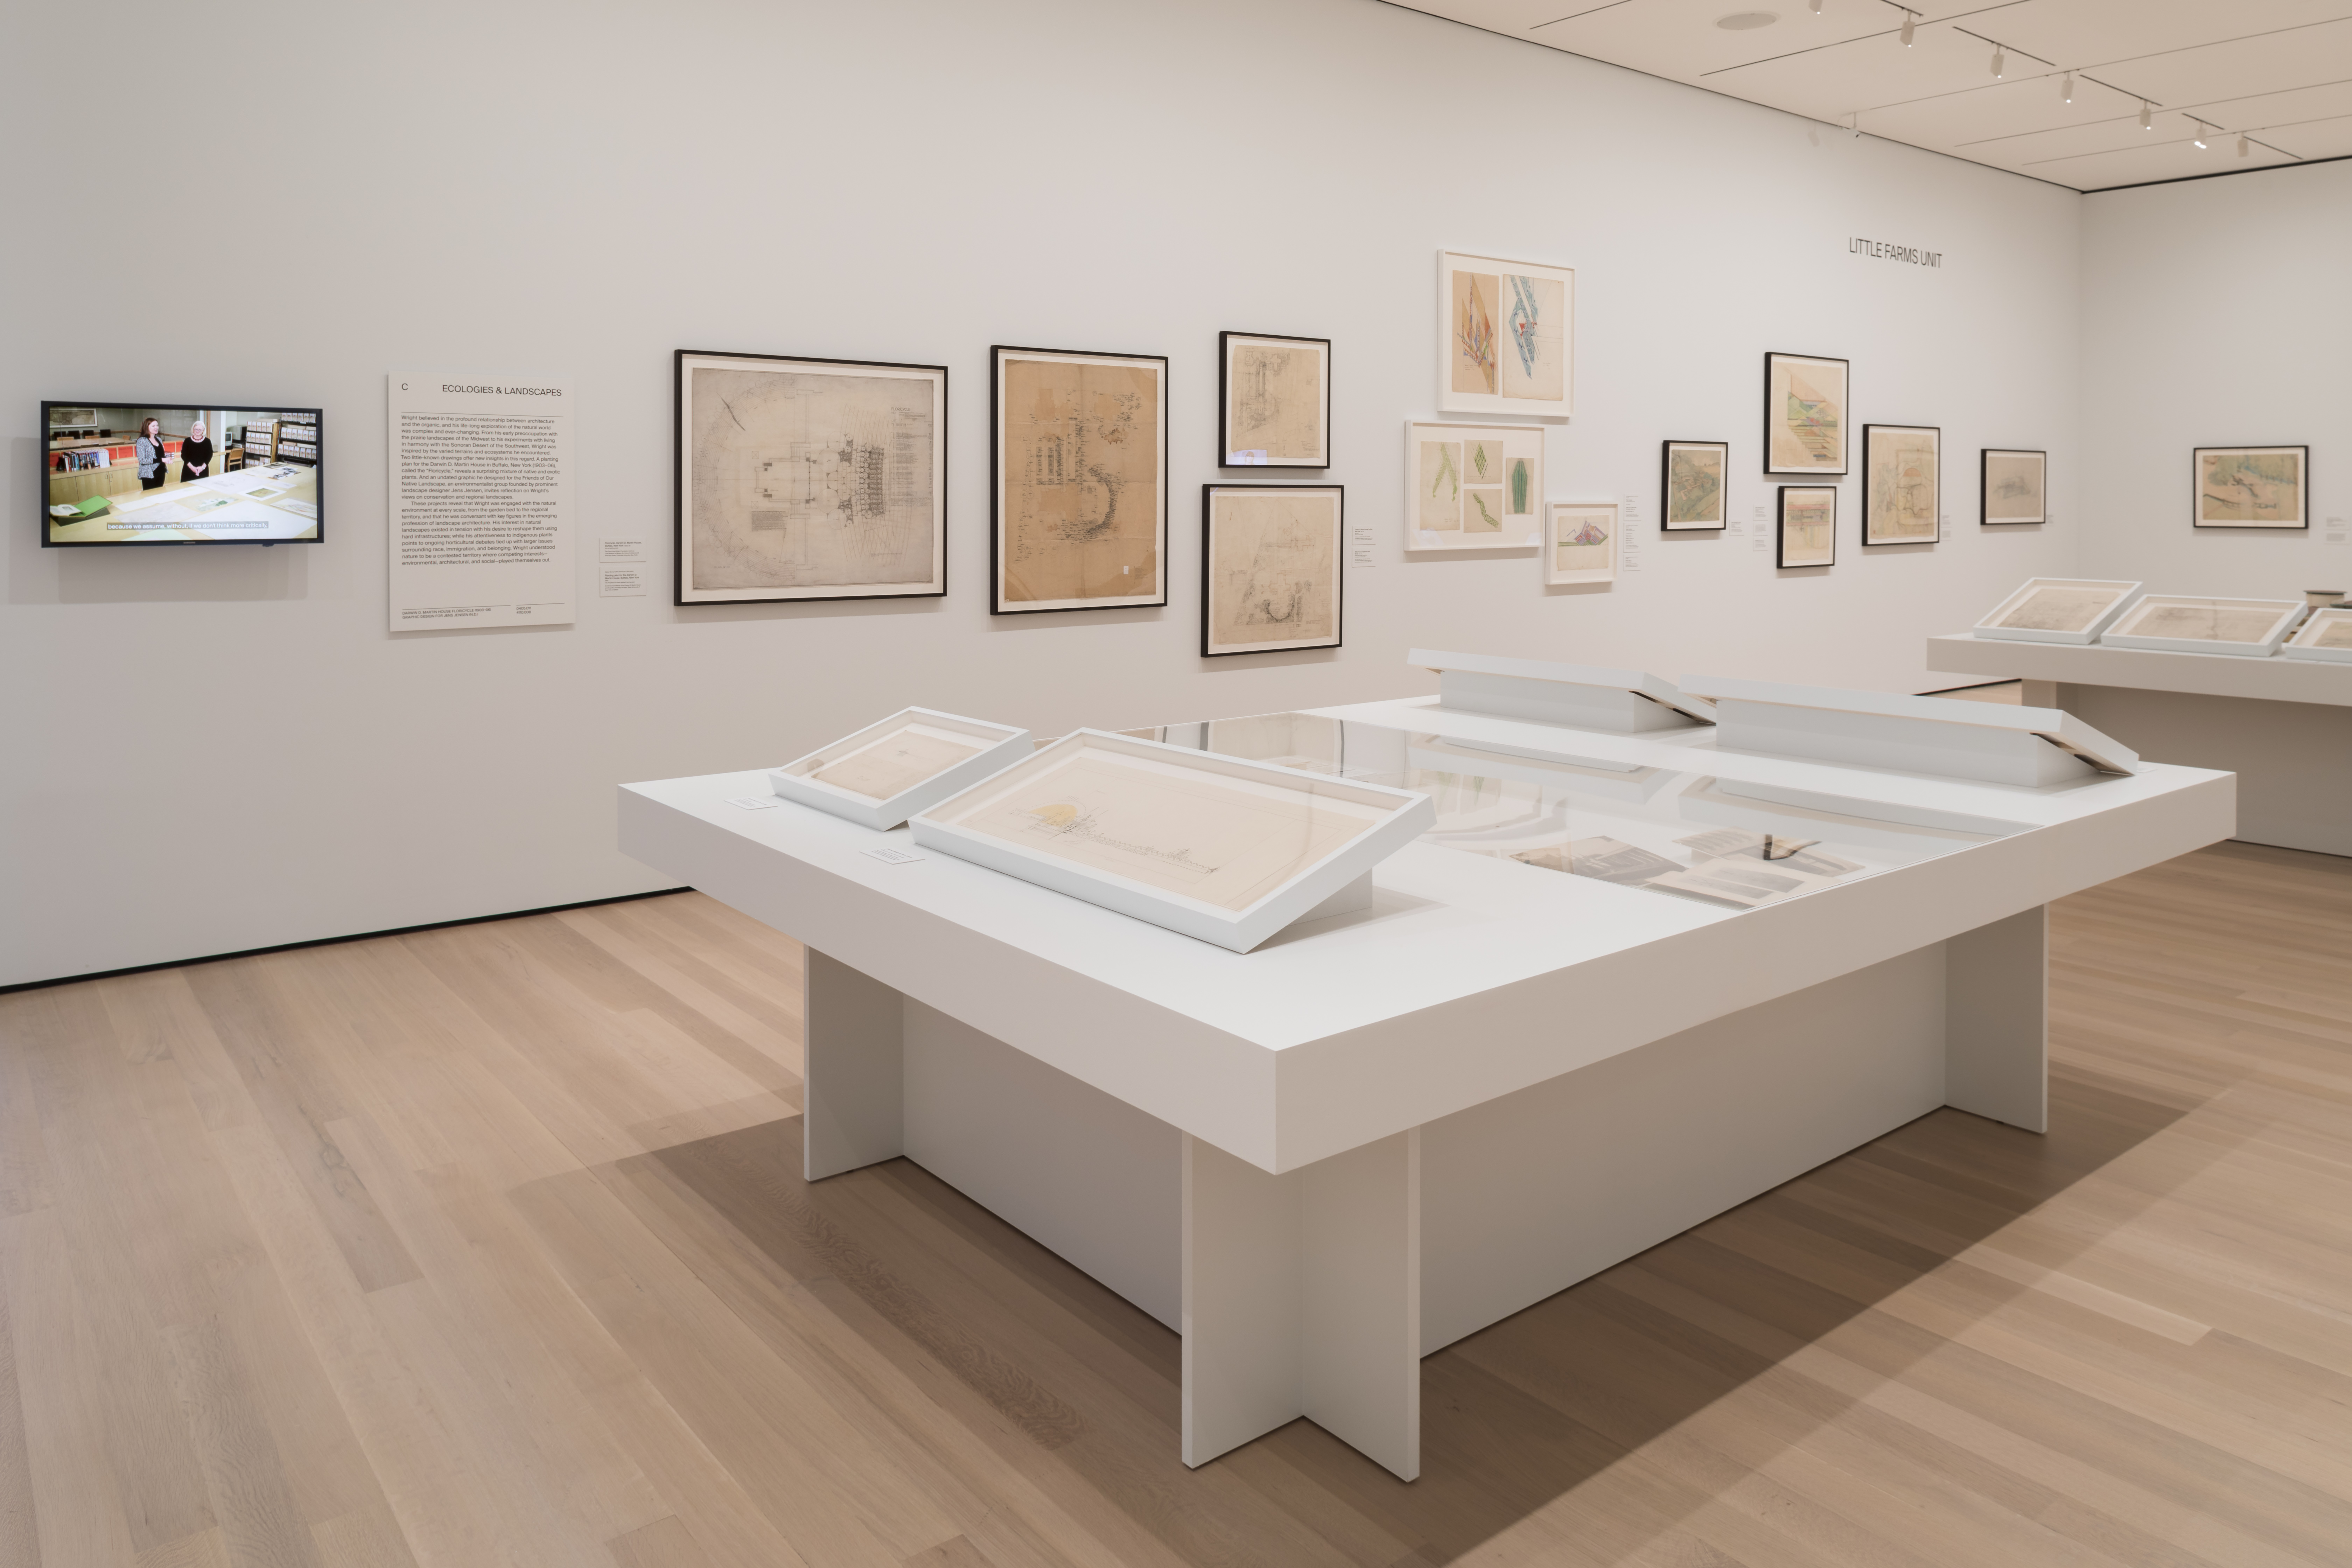 Installation view of Frank Lloyd Wright at 150: Unpacking the Archive. The Museum of Modern Art, New York, June 12–October 01, 2017. © 2017 The Museum of Modern Art. Photo: Jonathan Muzikar